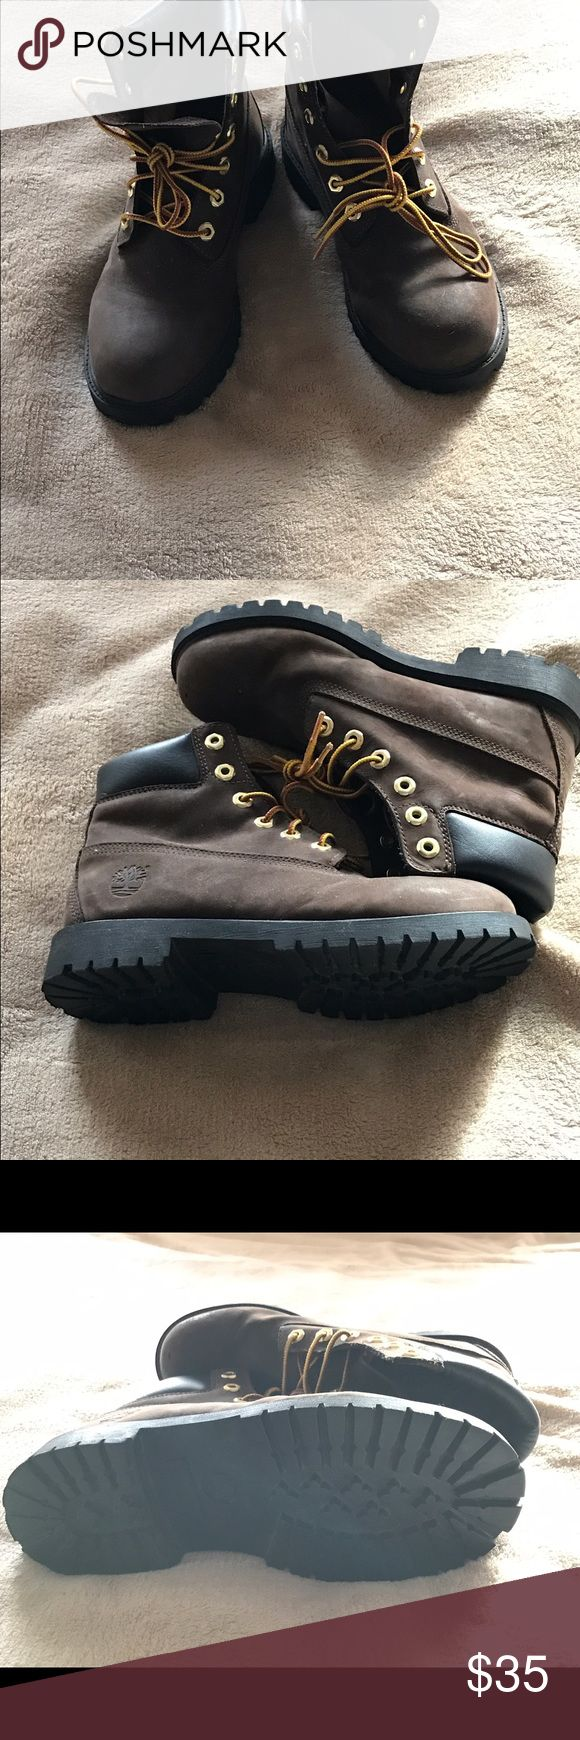 Boys timberland boots Dark brown Timberland boots almost new. Timberland Shoes Lace Up Boots